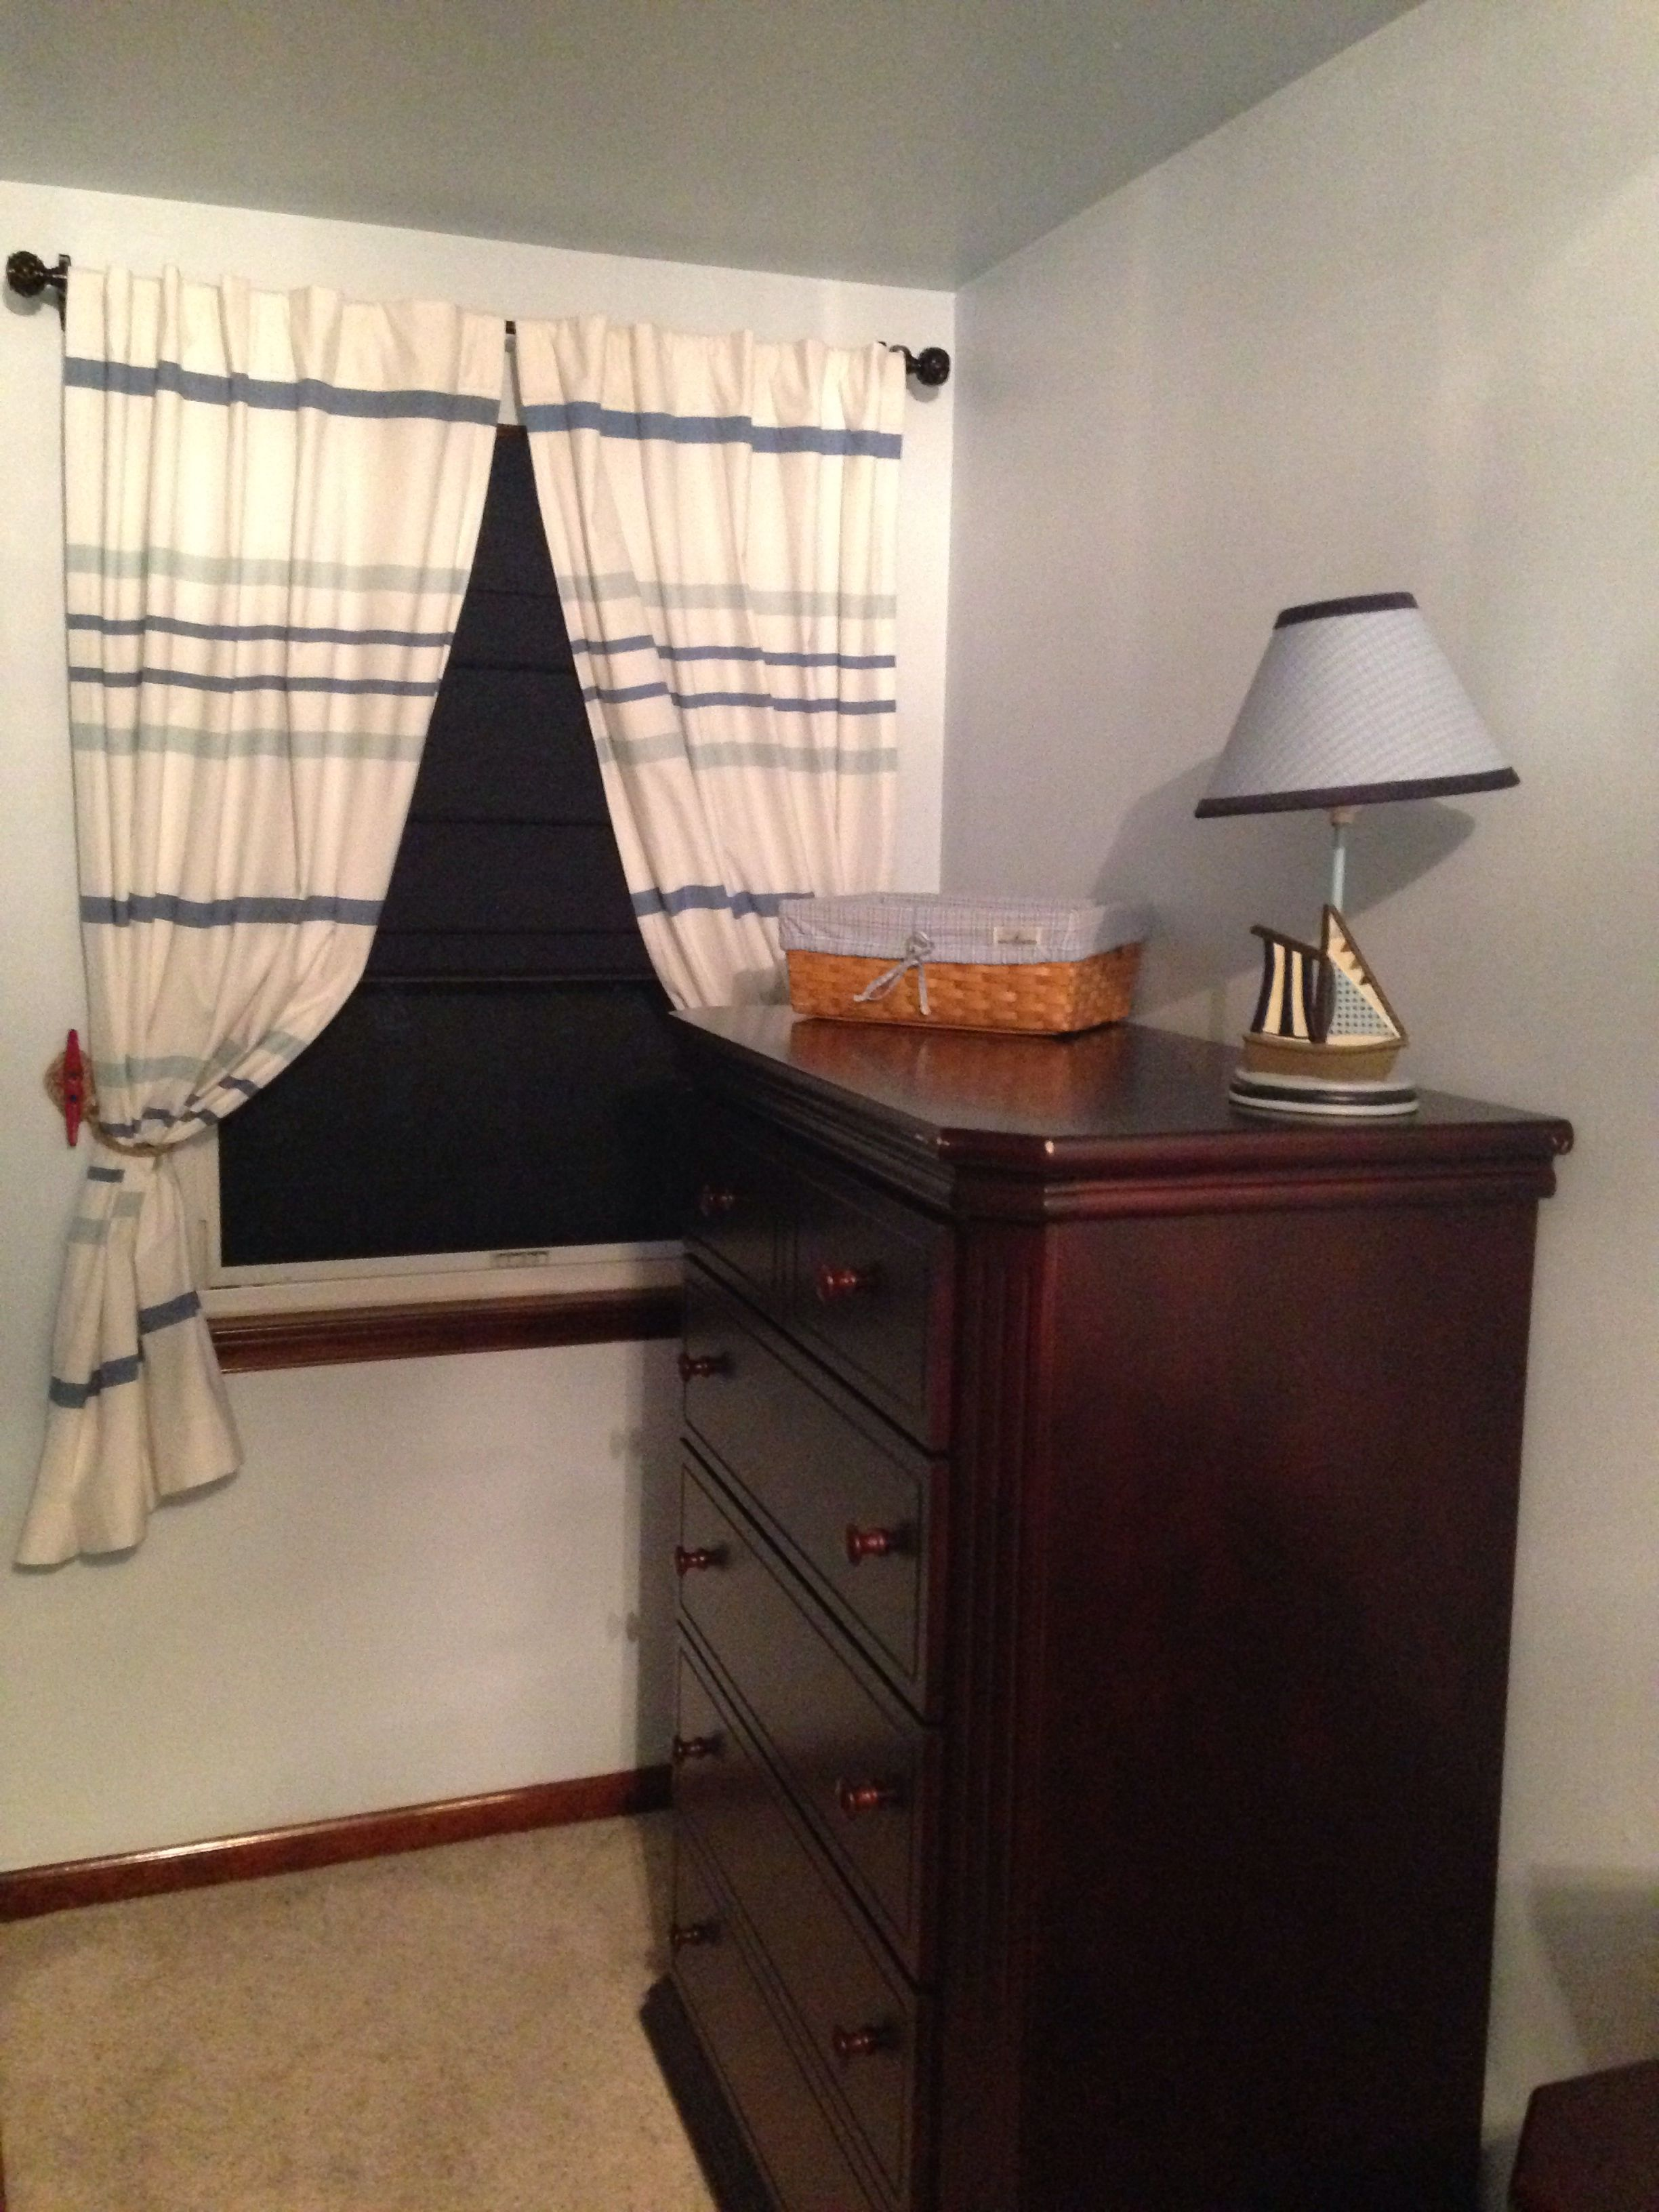 My Nautical Nursery Curtains From Land Of Nod Curtain Tie Back